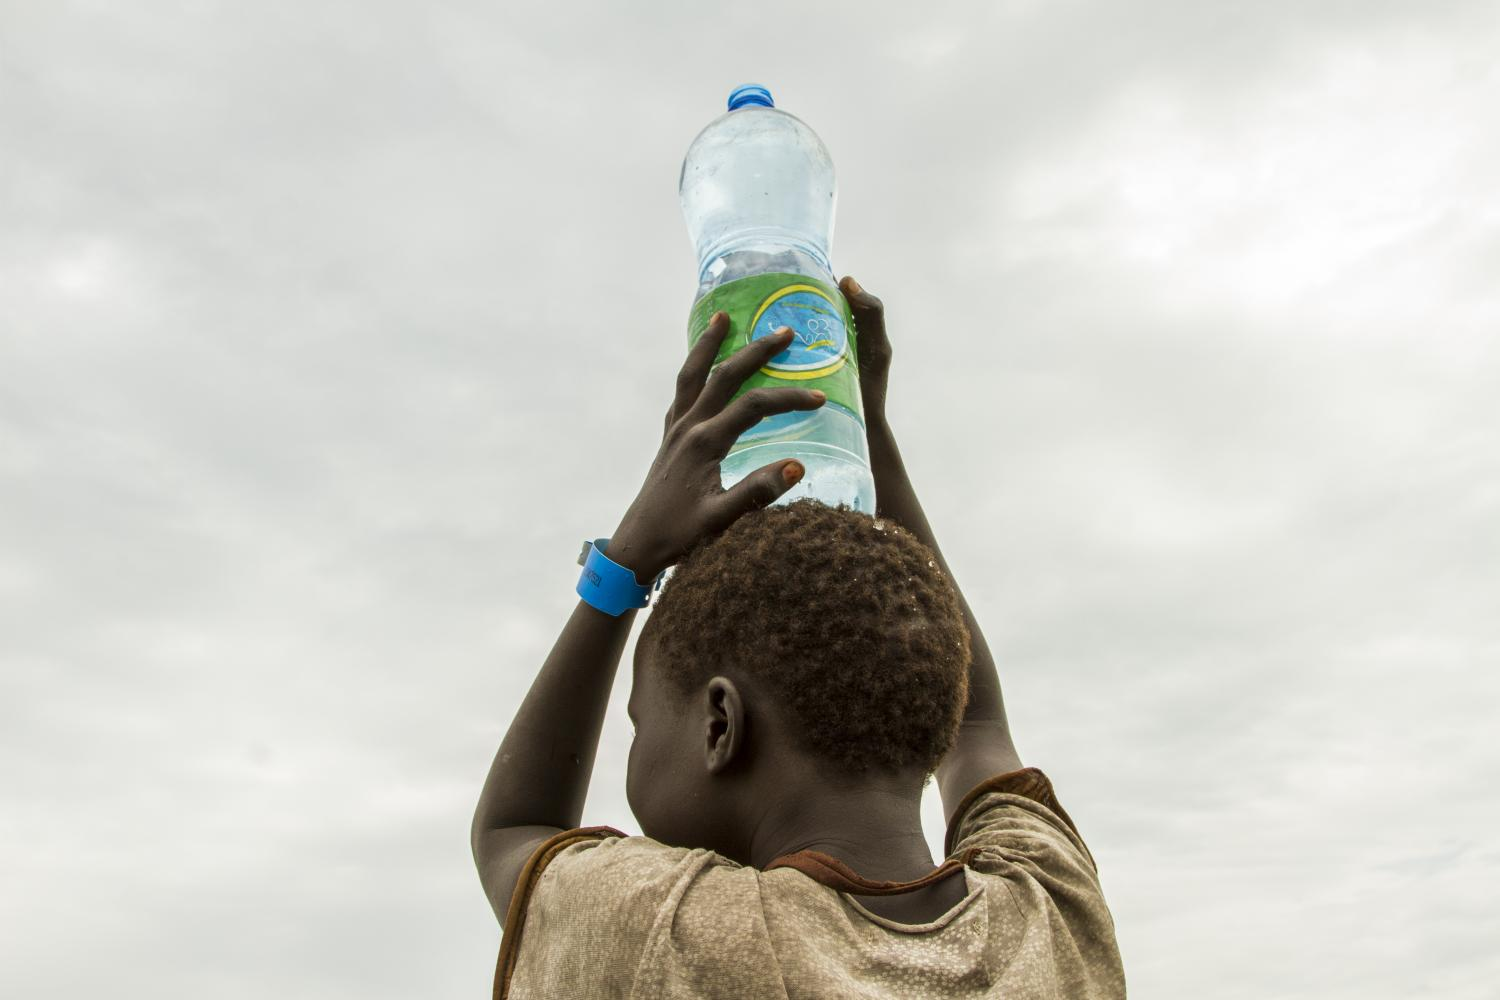 P&G announced in advance of World Water Day it would deliver 25 billion liters of water – more than 100 billion glasses of water – by 2025 through its non-profit Children's Safe Drinking Water (CSDW) Program.